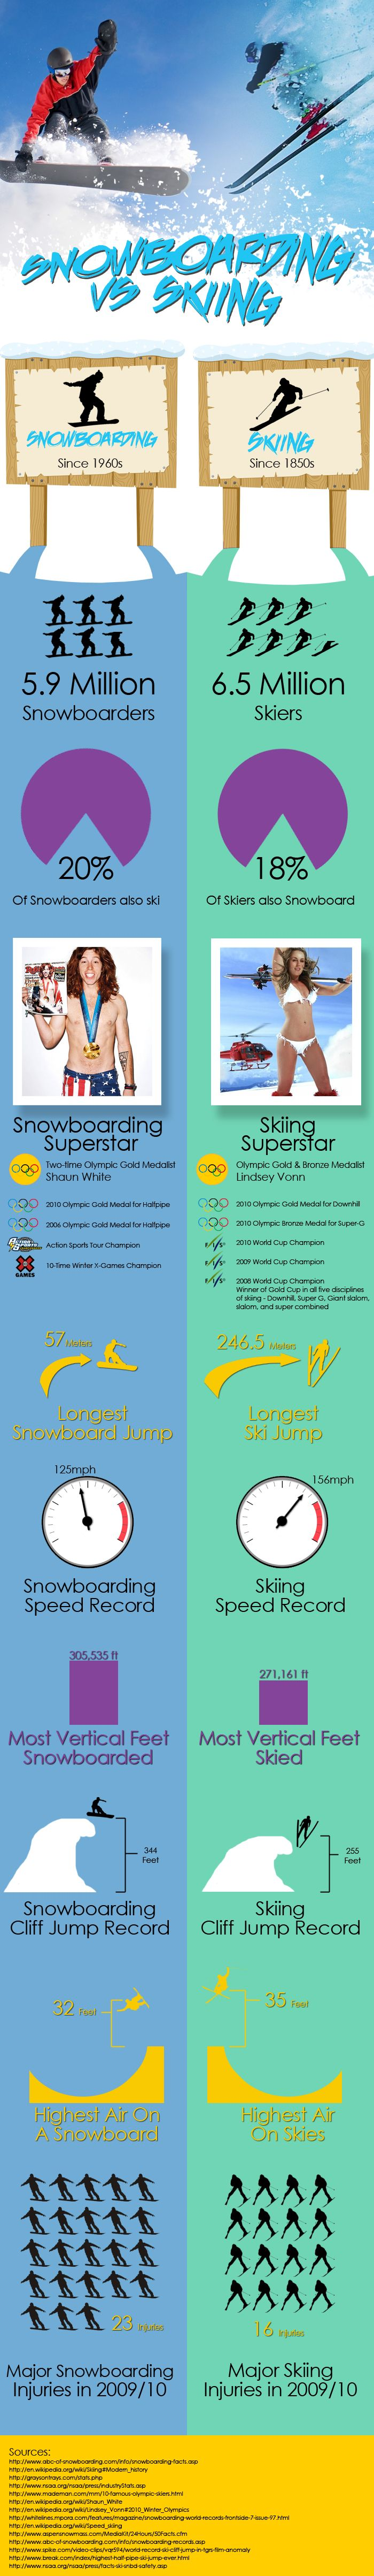 Snowboarding vs Skiing [Infographic]